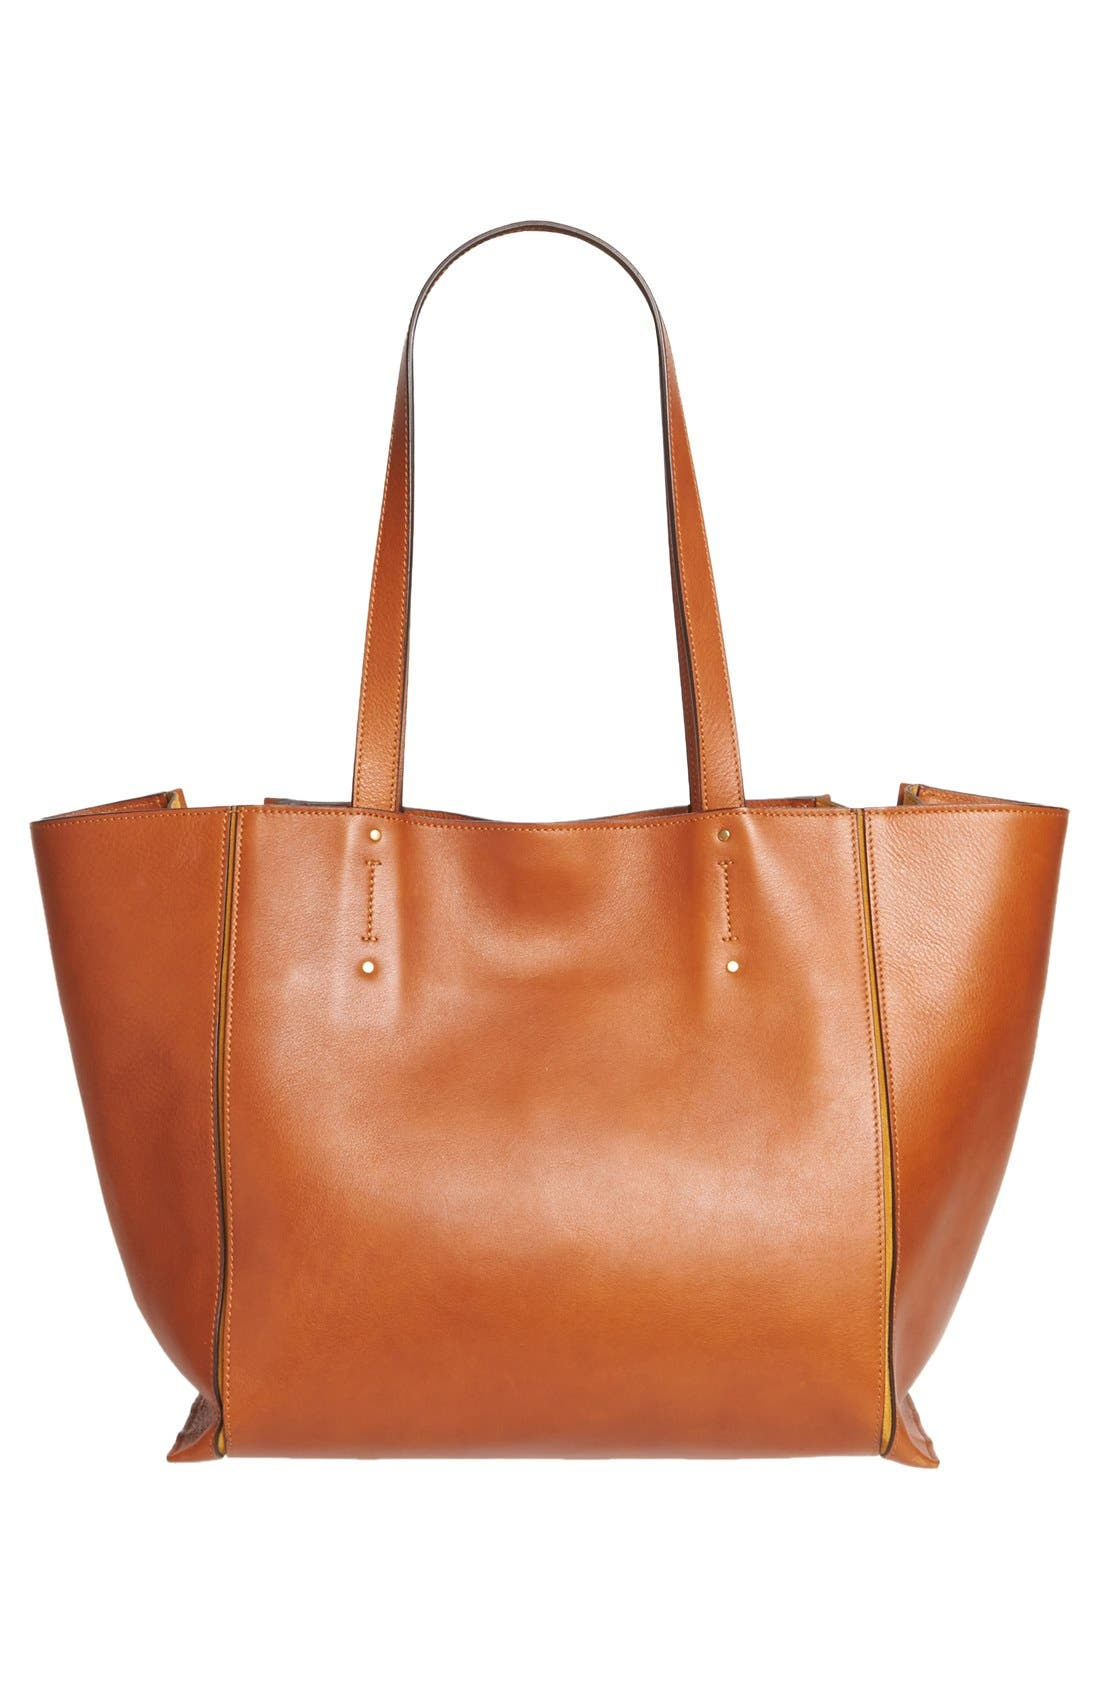 Medium Milo Calfskin Leather Tote,                             Alternate thumbnail 3, color,                             Caramel